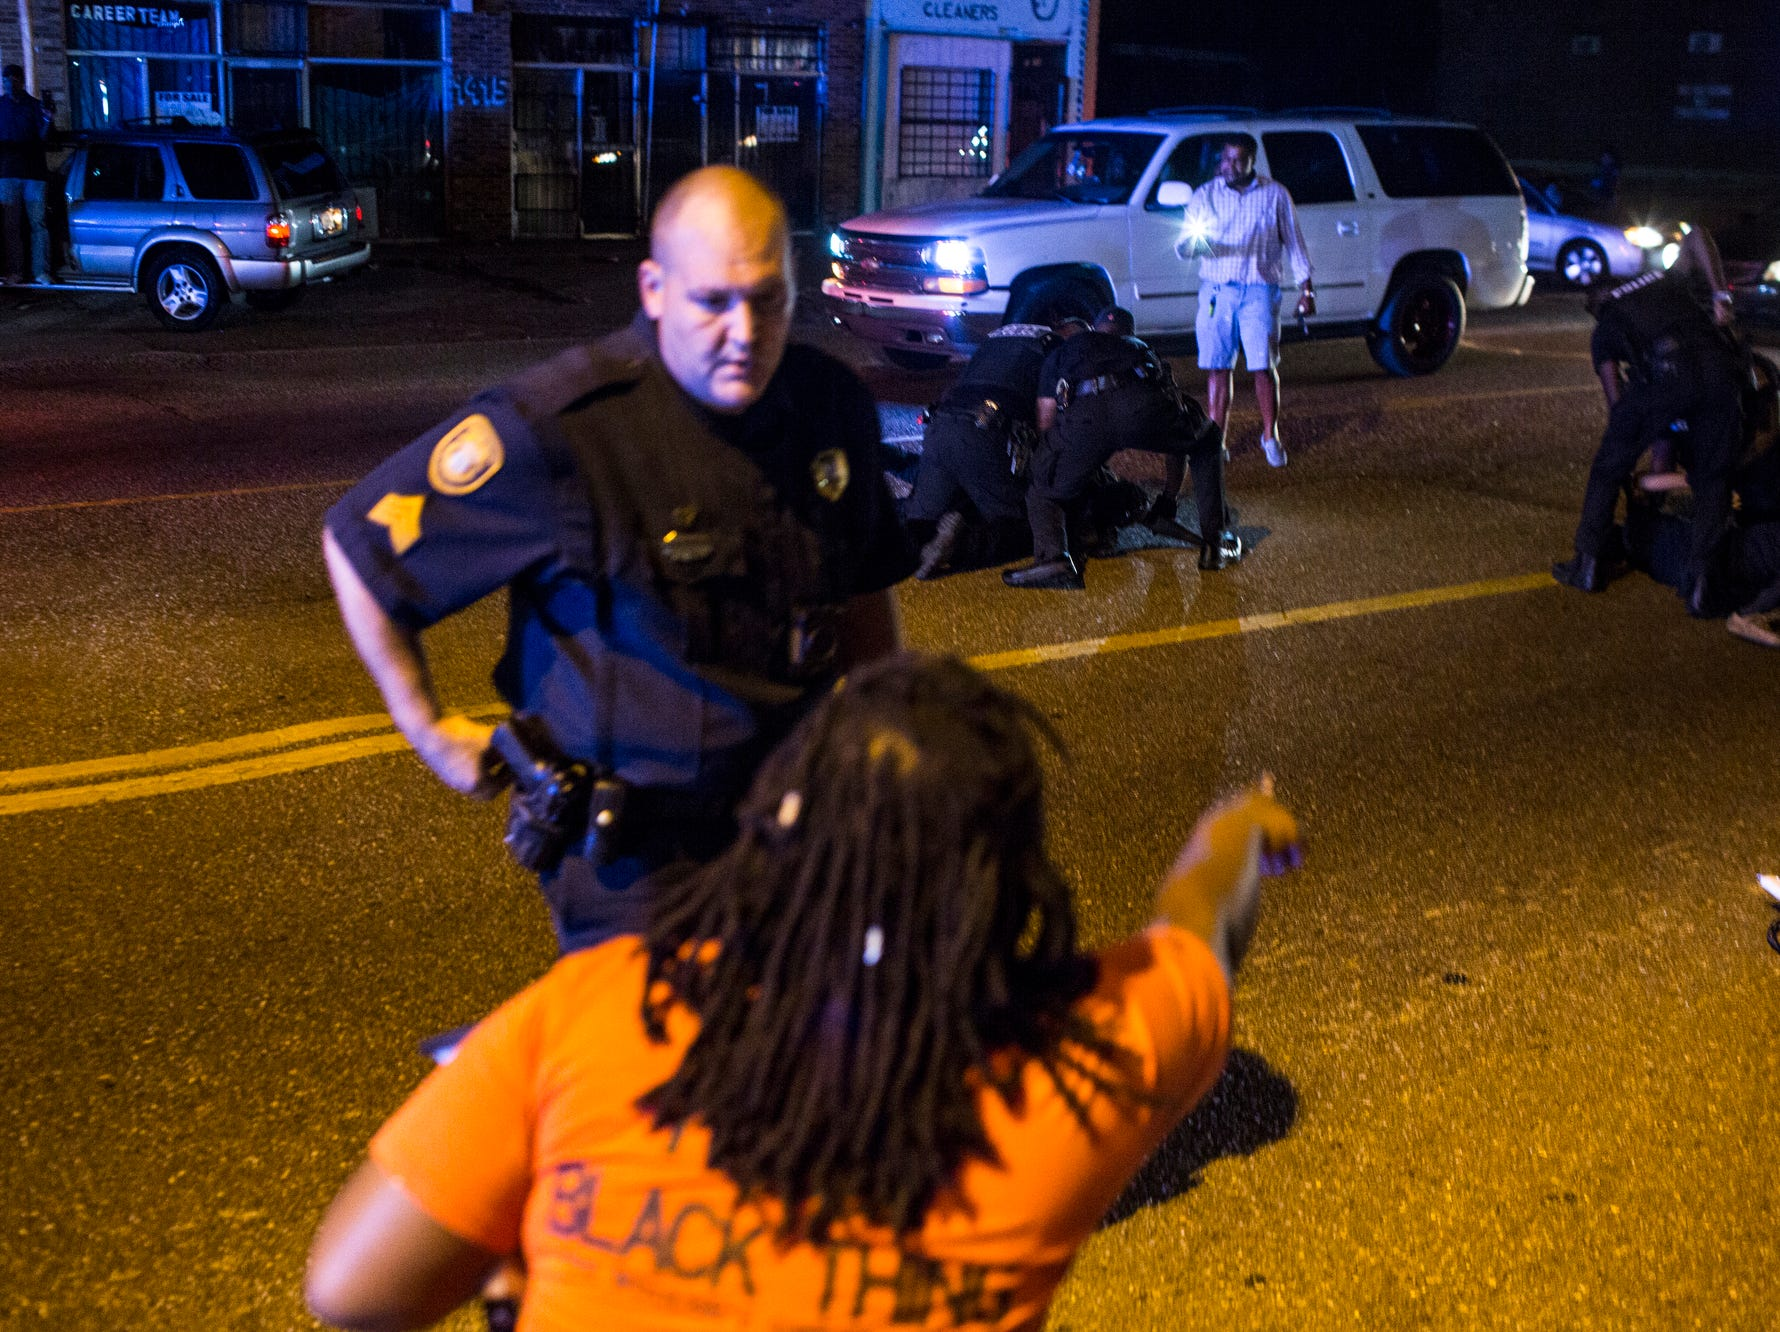 Memphis police officers arrest people along Elvis Presley Blvd. after protesters had shut down traffic along Elvis Presley Boulevard near the site of the police shooting of Martavious Banks on Sept. 19. The protests followed news that officers involved in the shooting of Banks may have improperly switched off their dashboard or body cameras, or didn't turn them on.